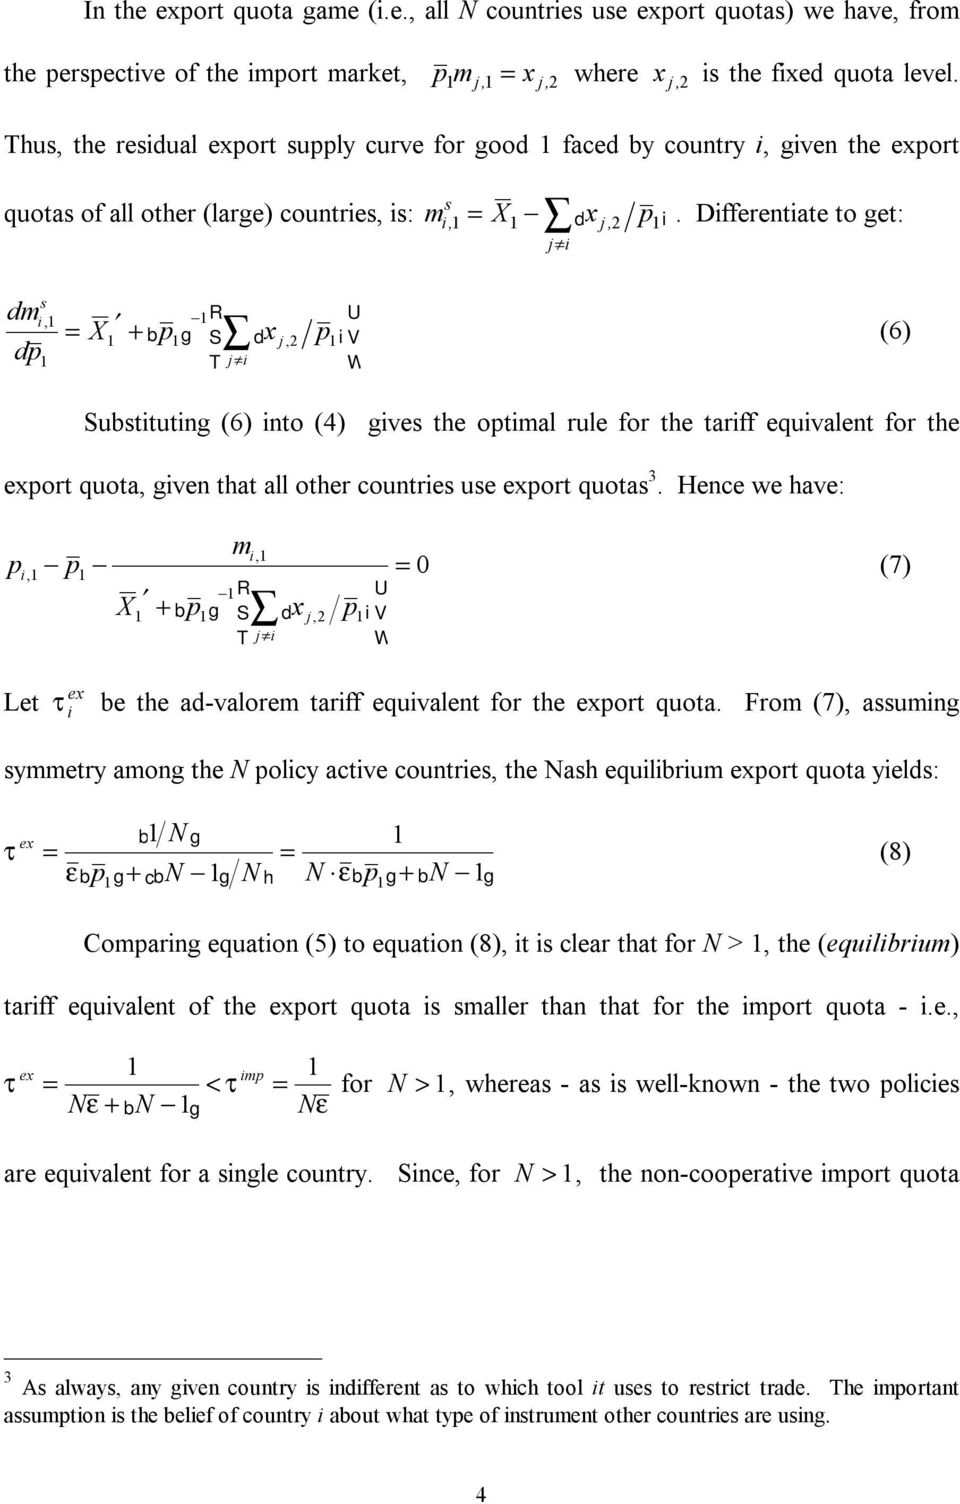 Differentiate to get: d dm dp s i, b g d i (6) X + R p ST x j, p VW j i Substituting (6) into (4) gives the optimal rule for the tariff equivalent for the export quota, given that all other countries